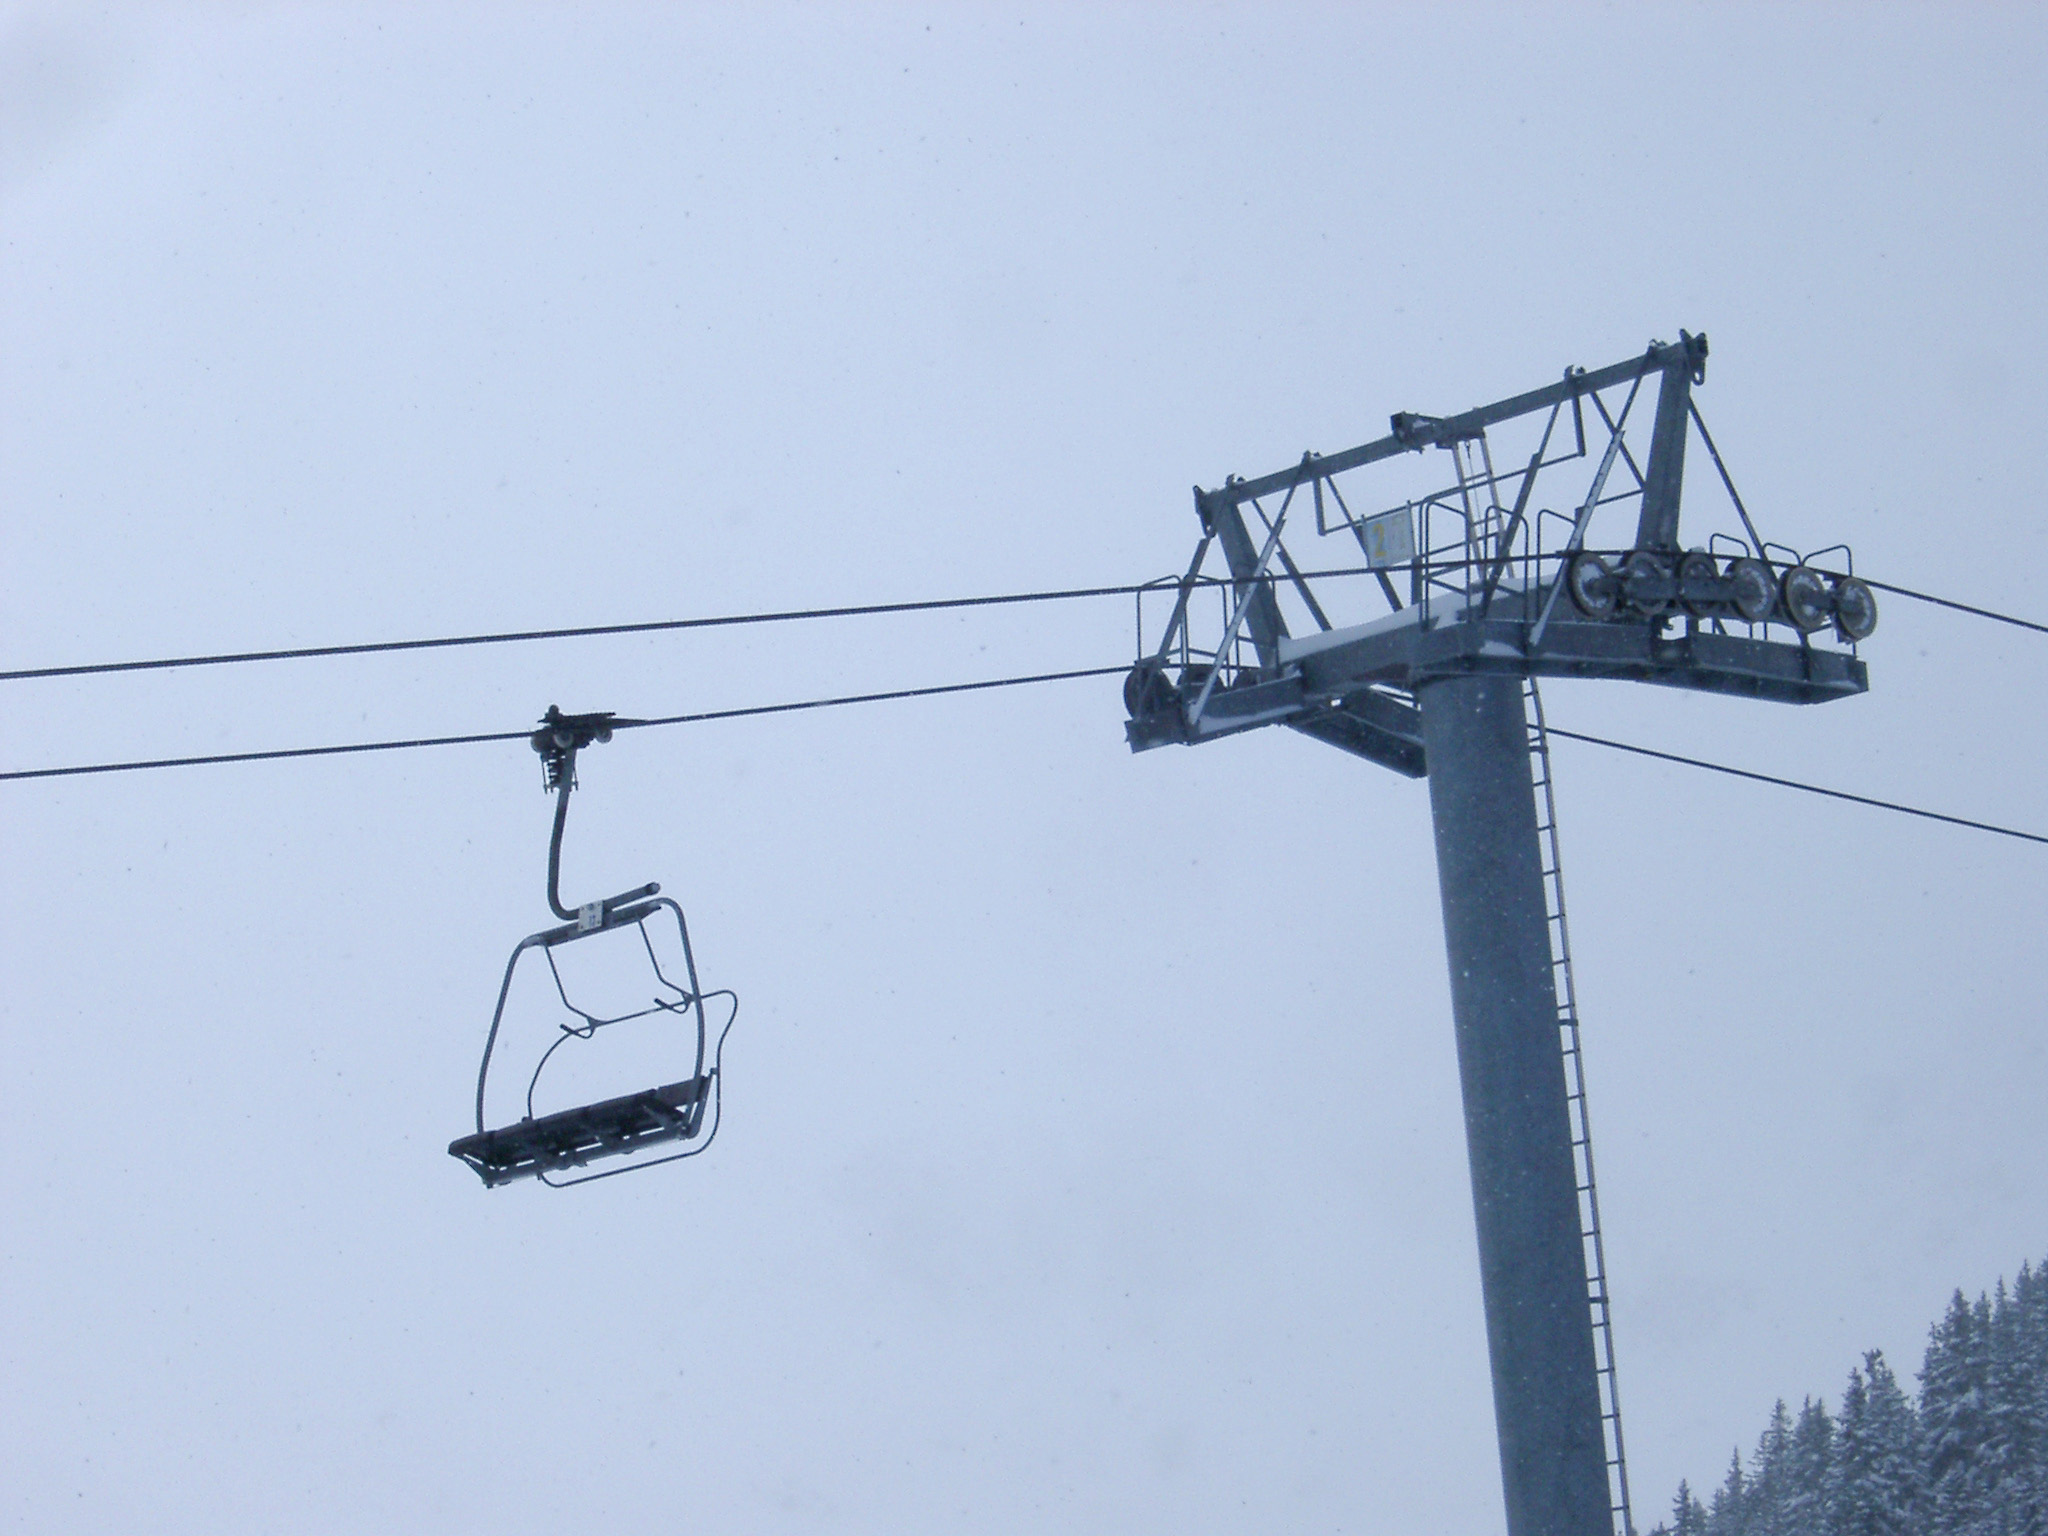 Free Stock photo of Cable car or Alpine chair lift